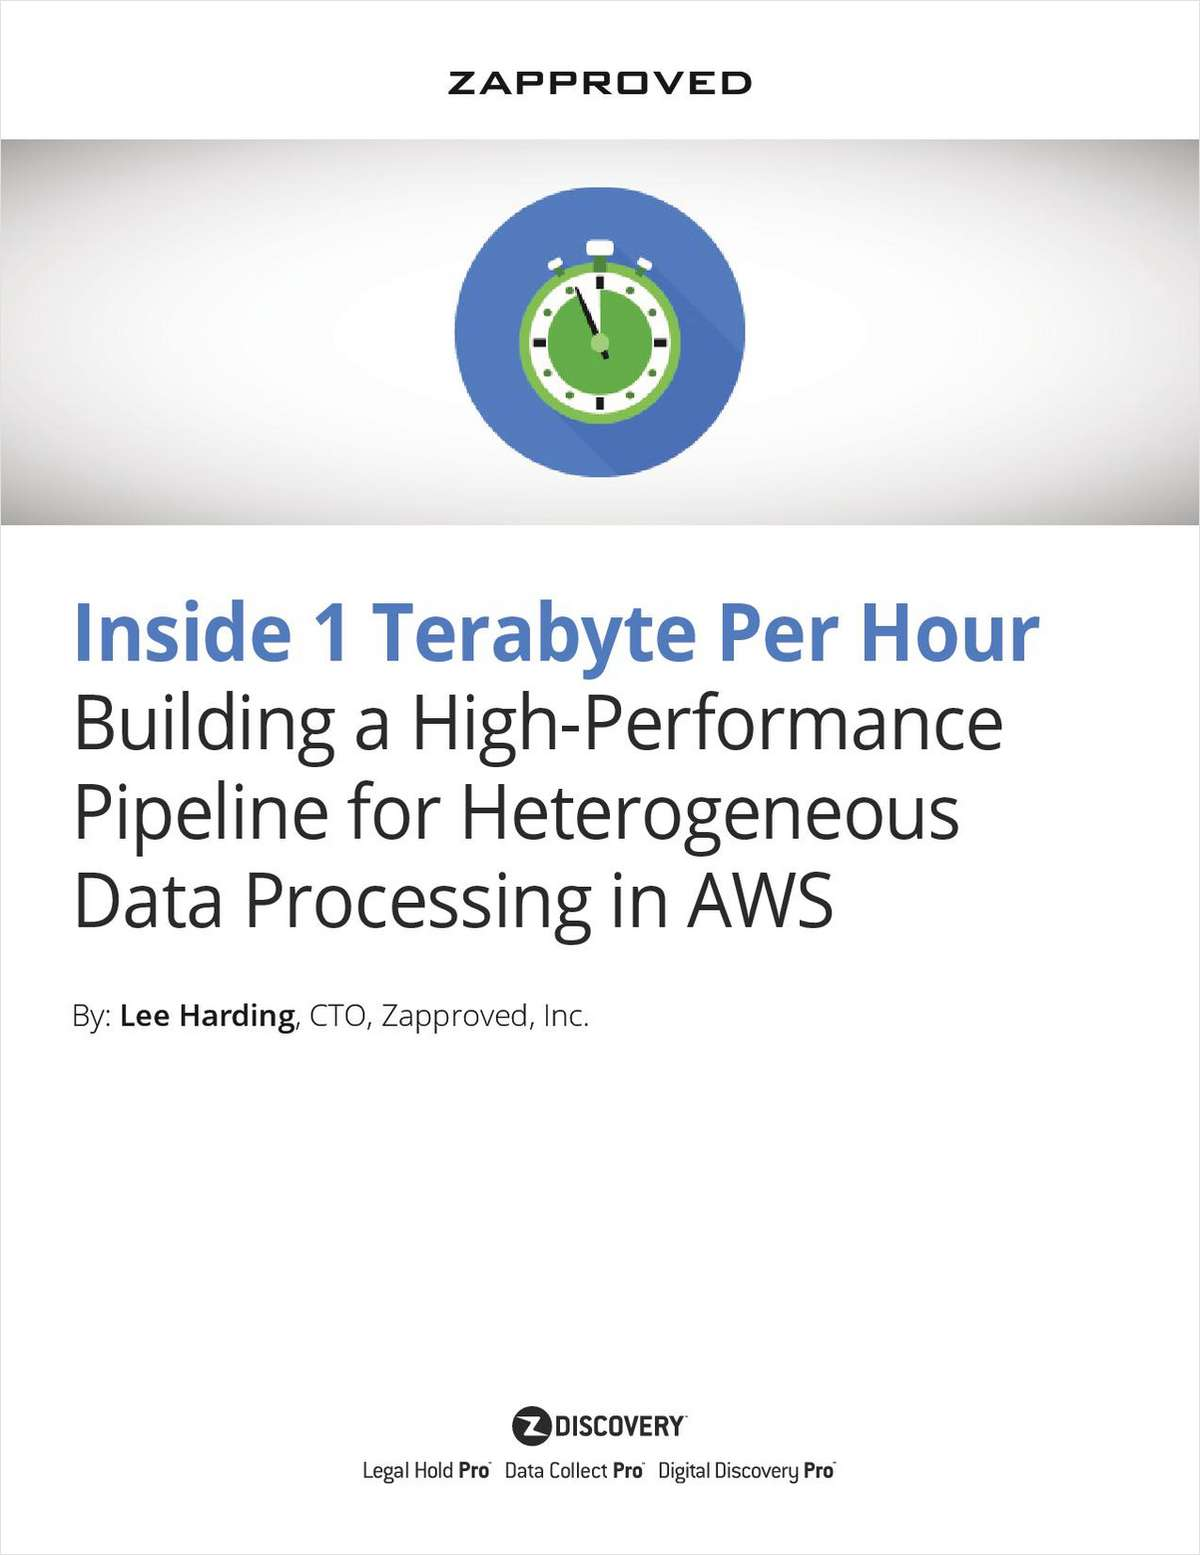 Building a High-Performance Pipeline for Heterogeneous Data Processing in AWS